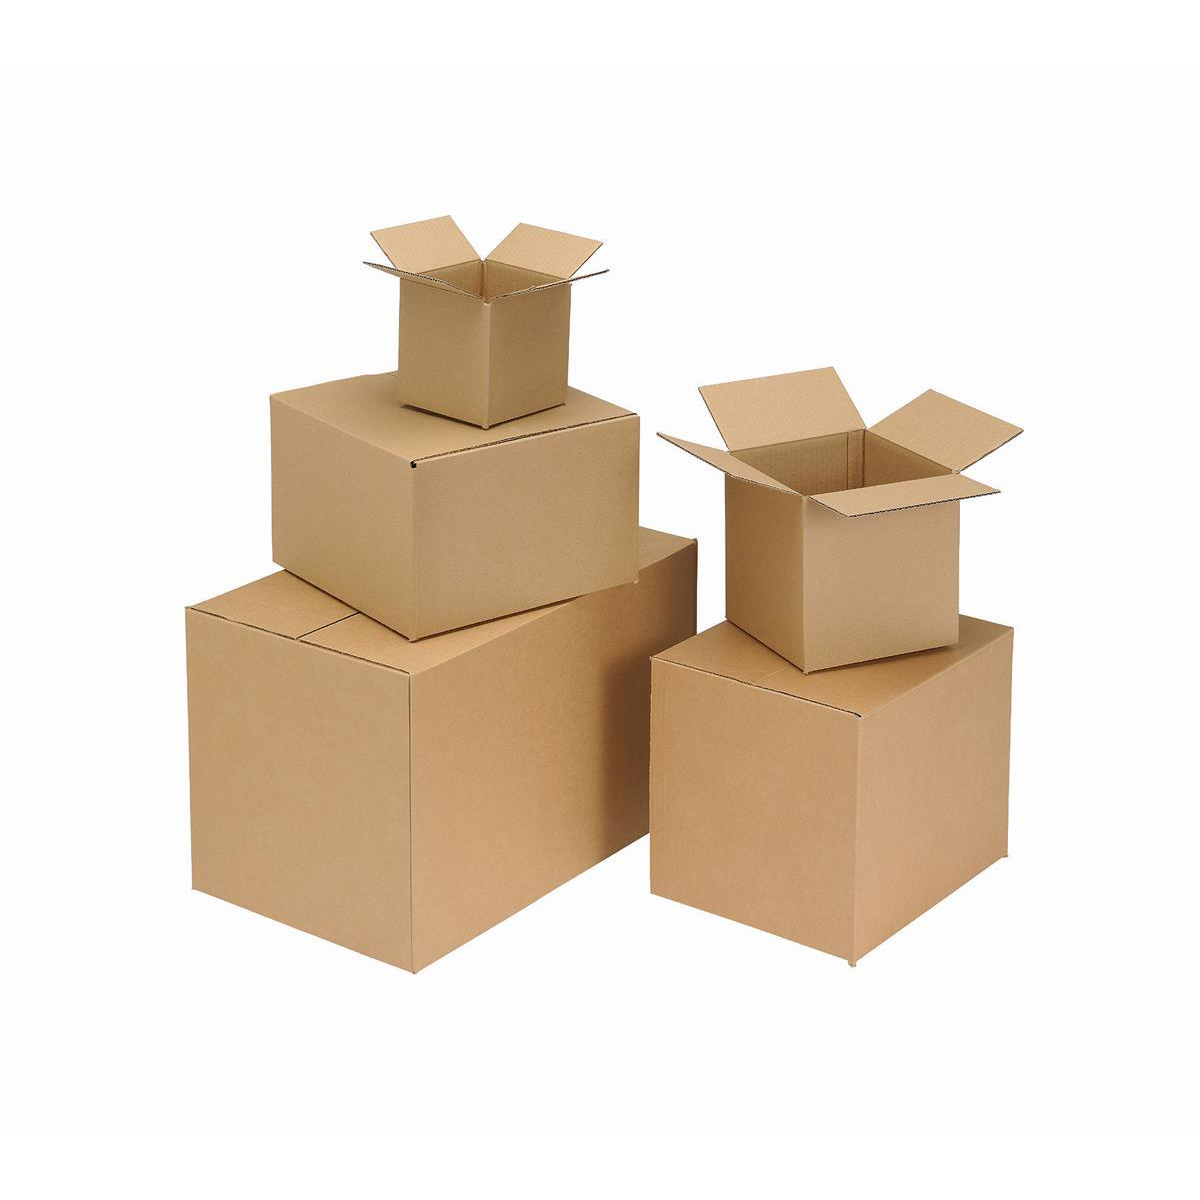 Packaging boxes Packing Carton Single Wall Strong Flat Packed 381x330x305mm Brown Pack 25